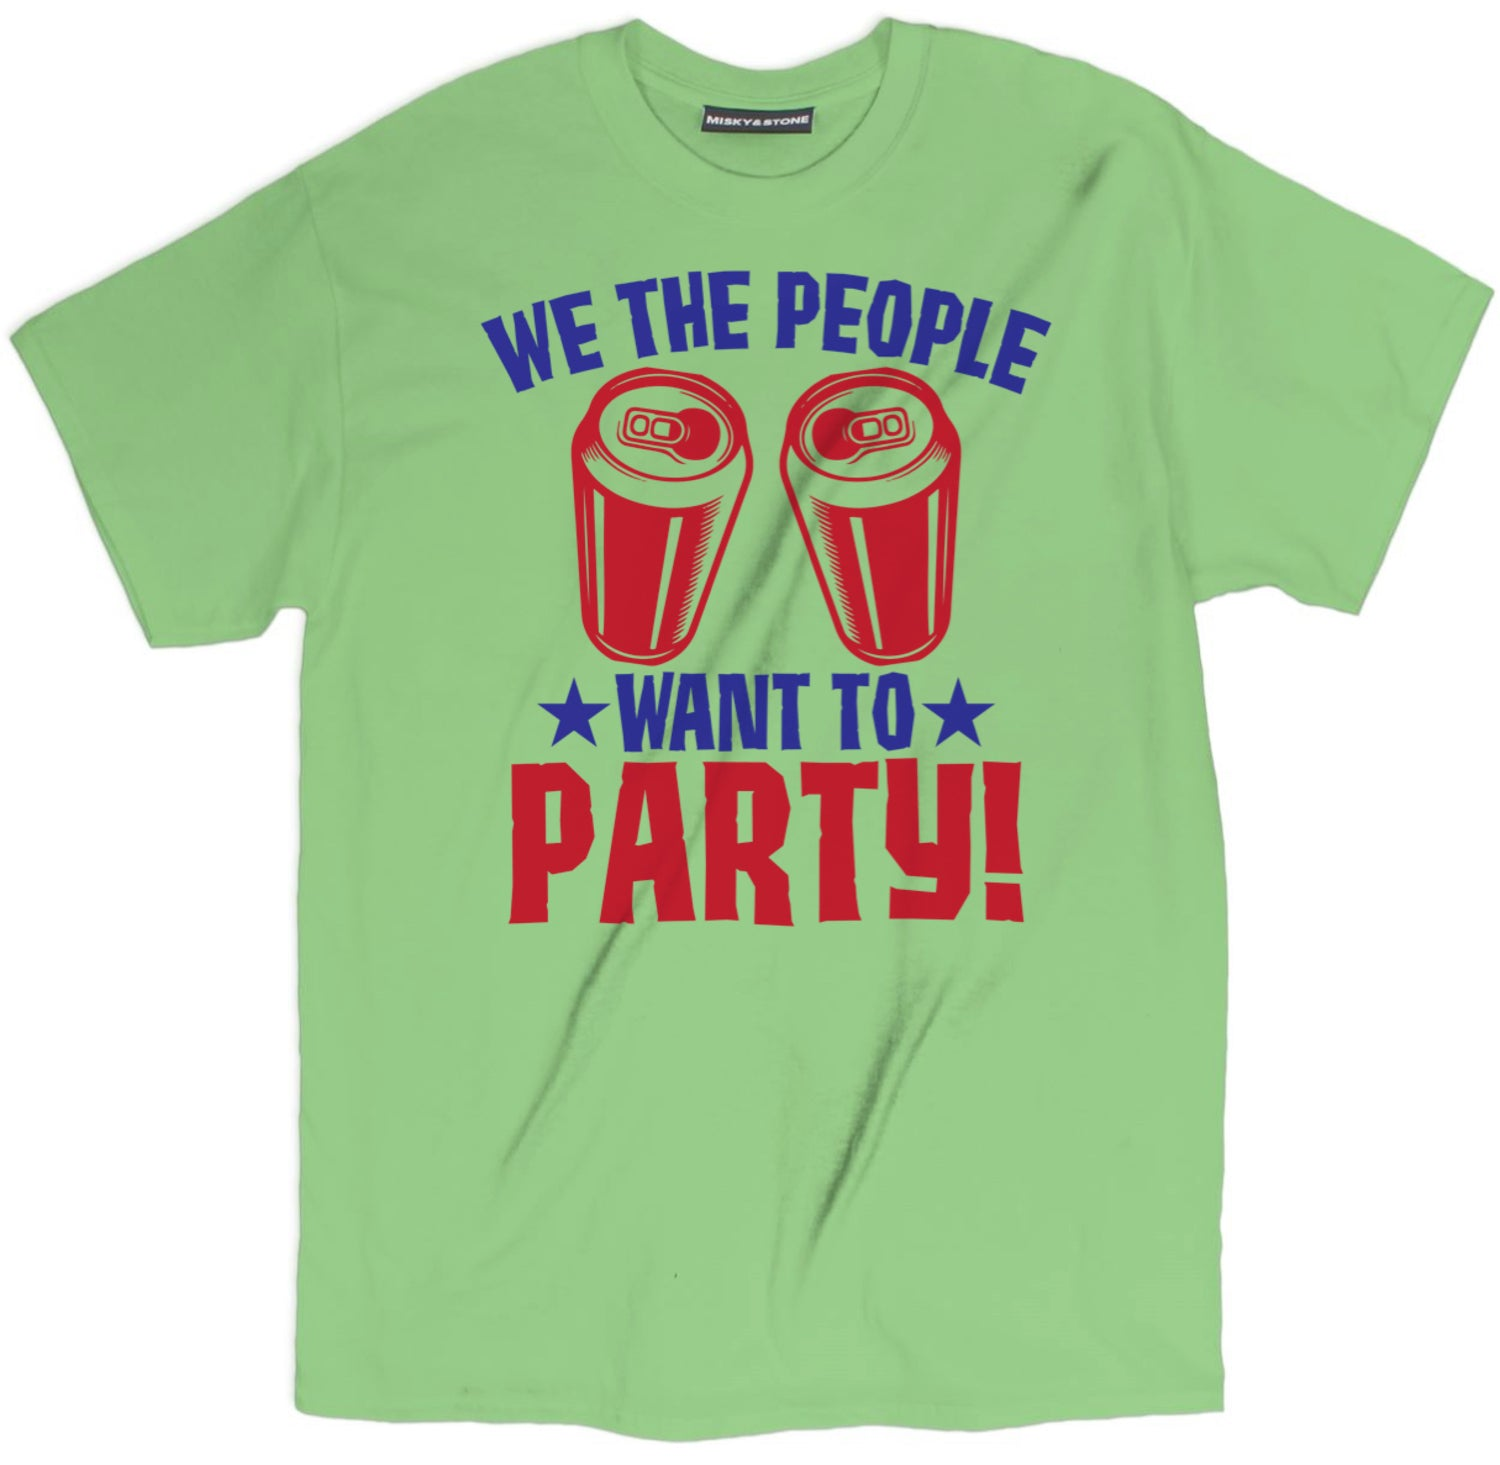 1759ec09 Misky & Stone Misky & Stone We The People Want To Party T Shirt ...